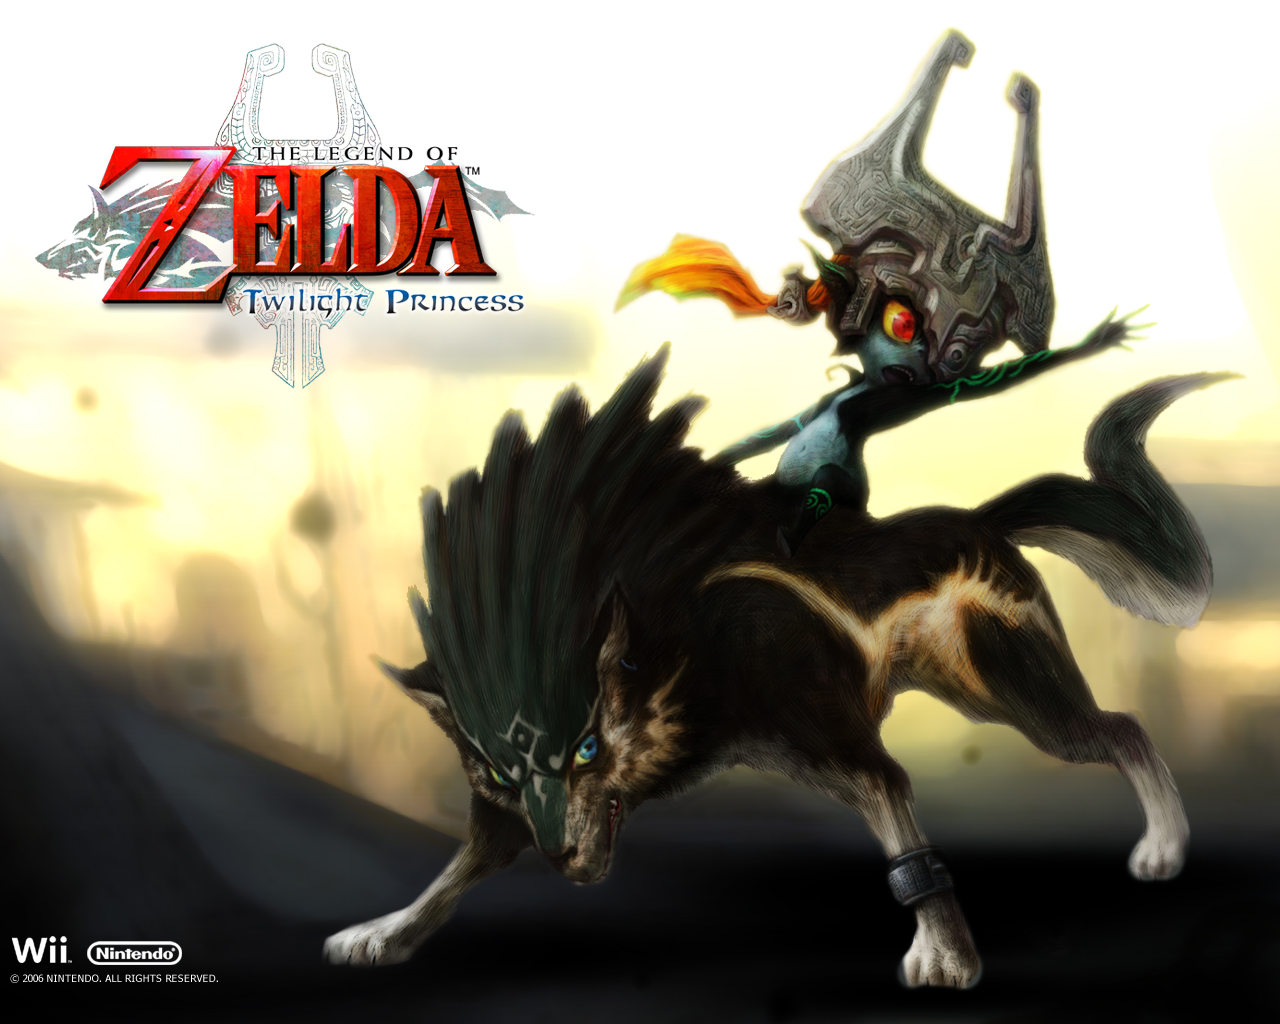 http://4.bp.blogspot.com/-ORR2_W4vG94/T4xlE3QwgHI/AAAAAAAABXM/JDx-4thKTws/s1600/The_Legent_of_Zelda_Twiglight_Princess_HD_Game_Wallpaper-gWb.jpg